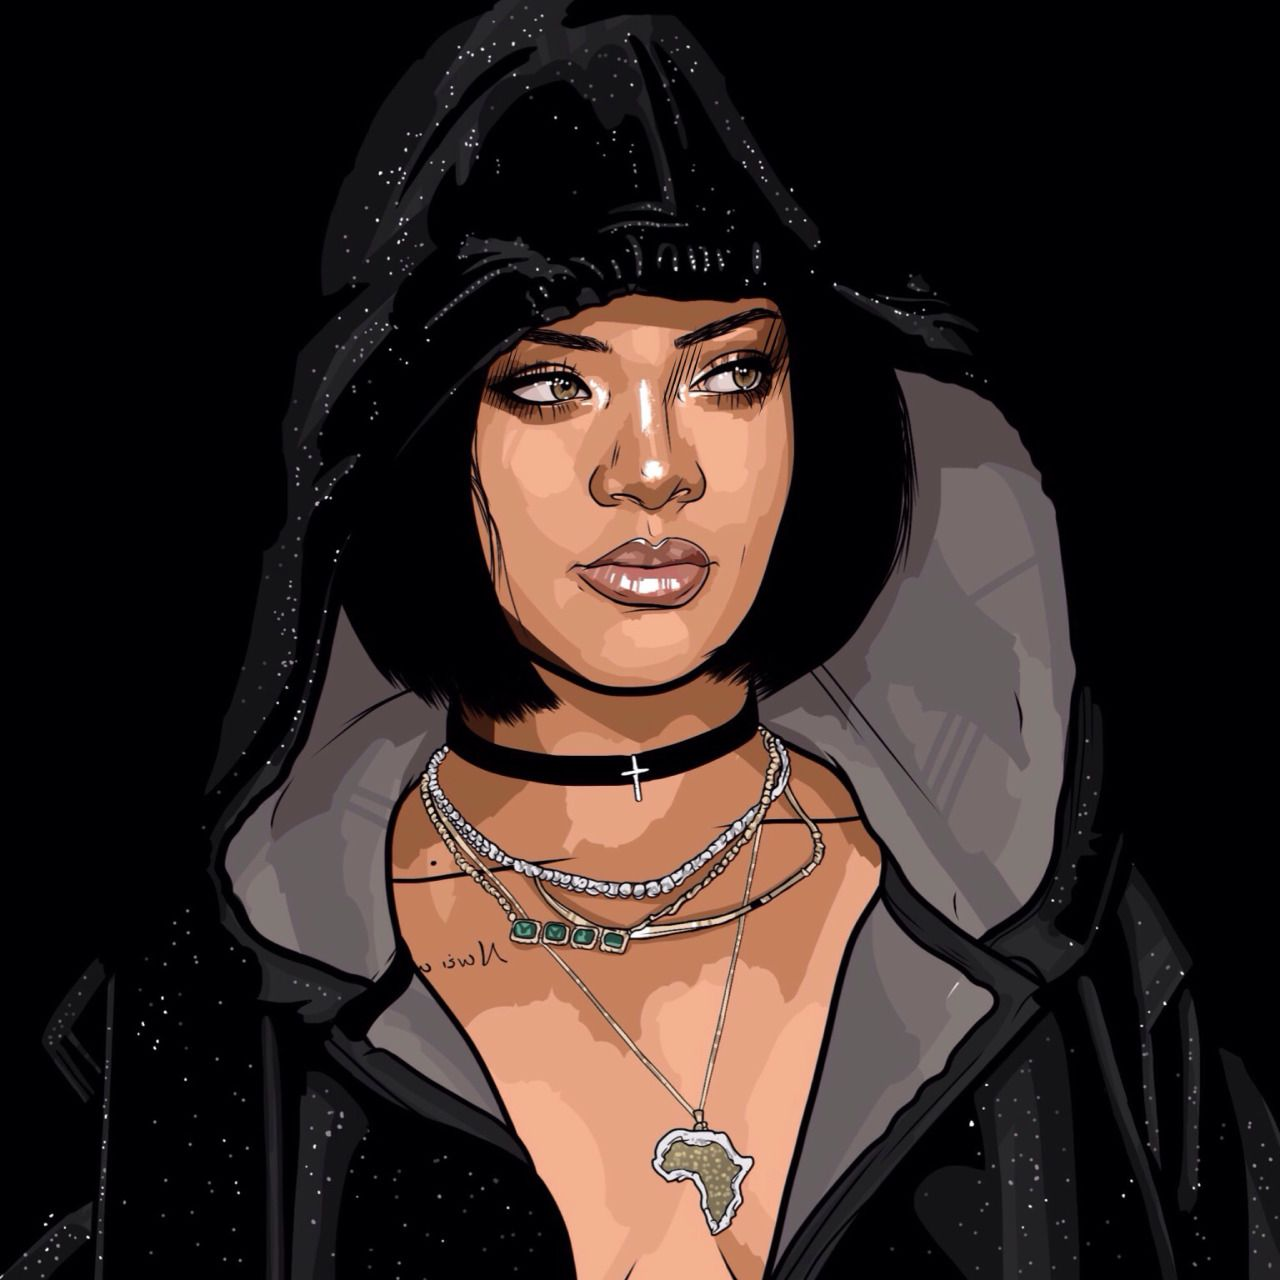 Rihanna iphone wallpaper tumblr - Main Blog 18 New York Ig Twitter Chris5ny All Work Done By Me